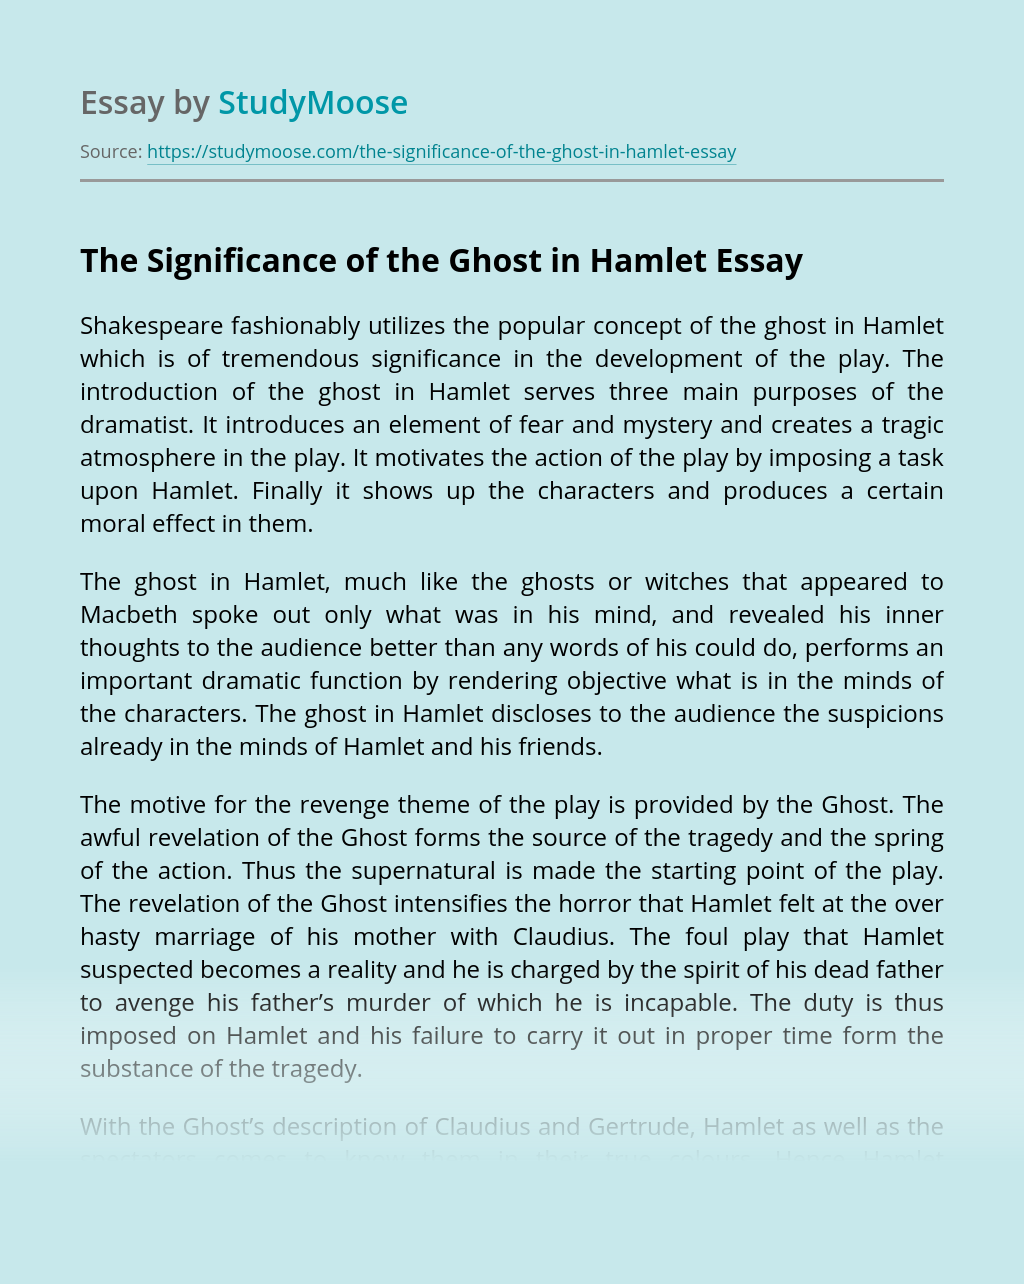 The Significance of the Ghost in Hamlet